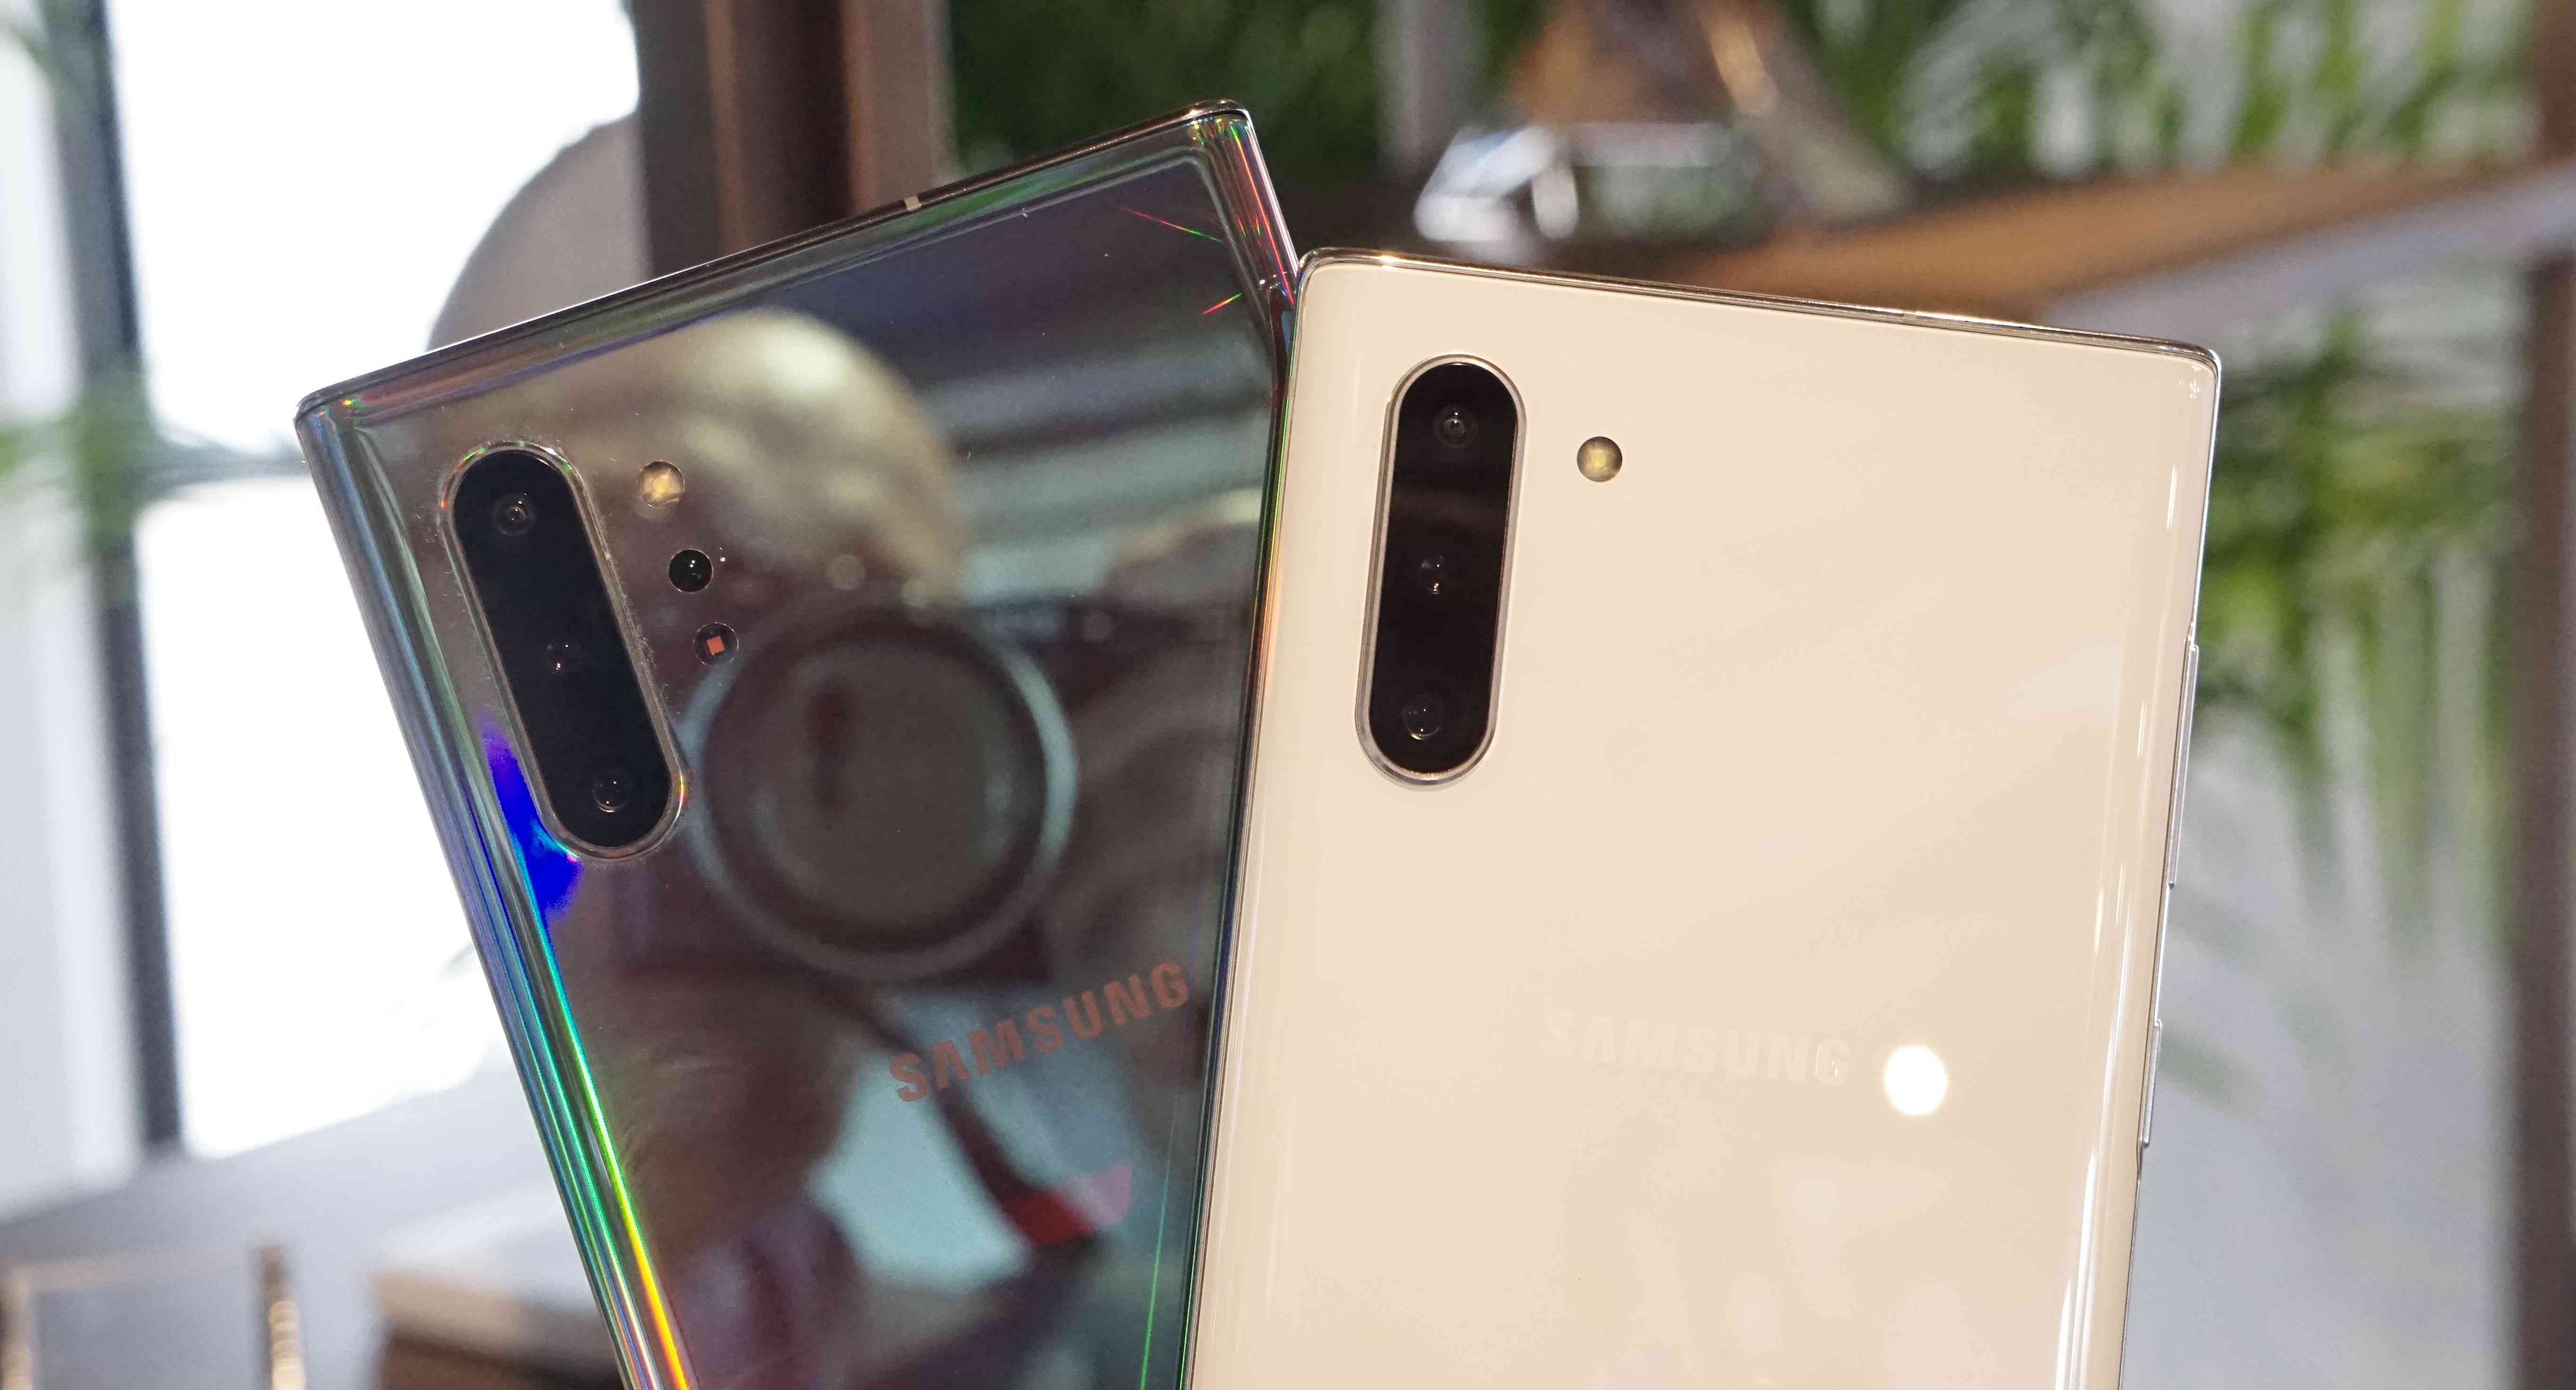 Samsung Galaxy Note10+ and Note10